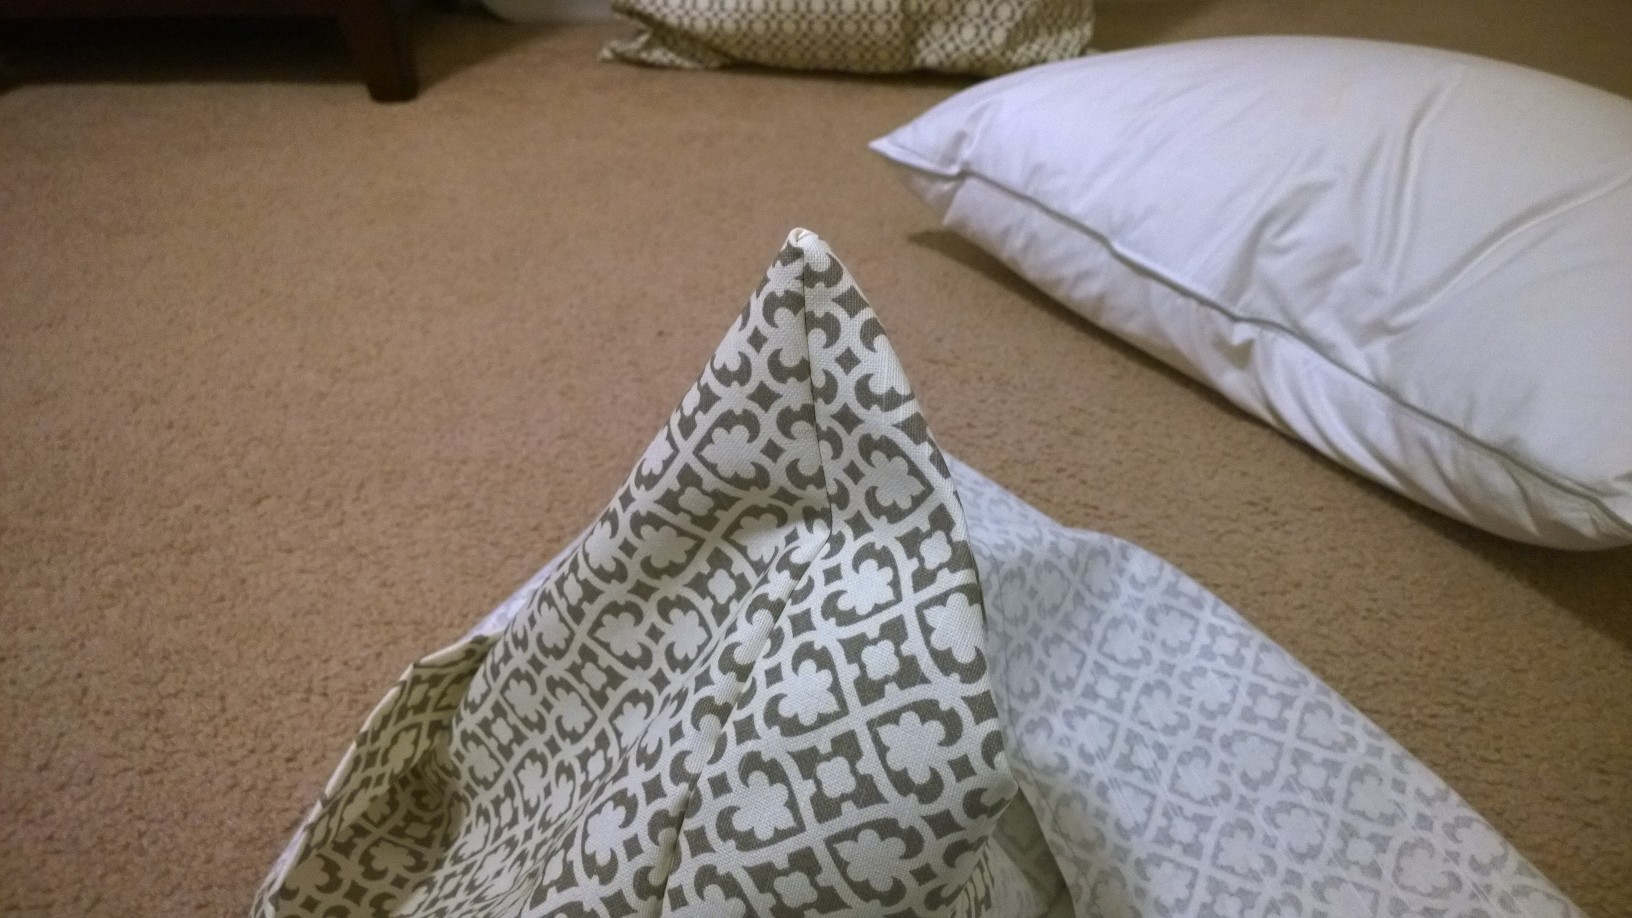 Once all three pieces were sewn, turning the pillow inside out, pressing the corners out to show finished edges